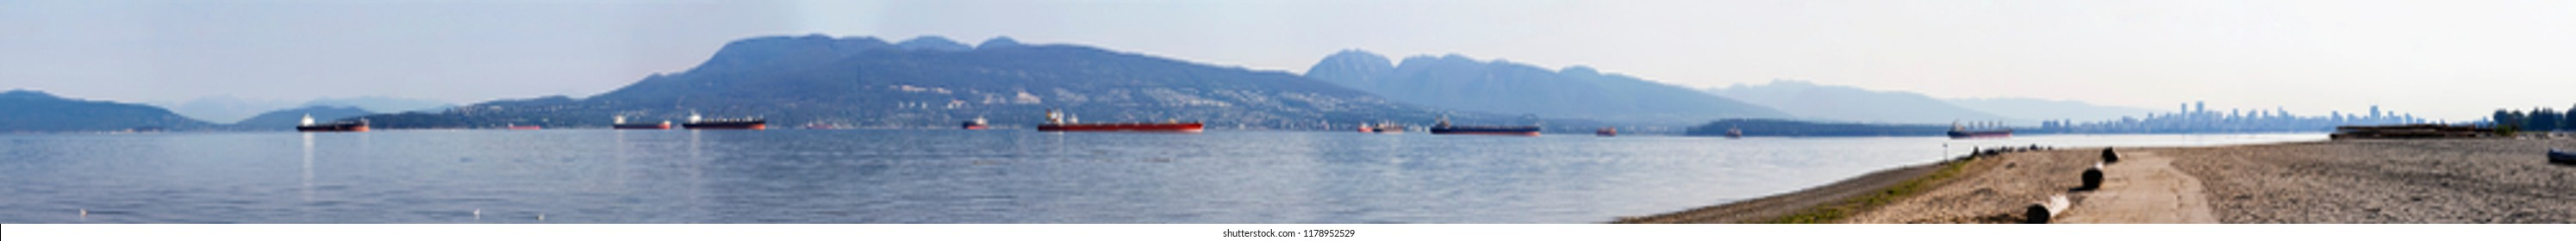 View of the Burrard Inlet looking towards English Bay, Vancouver, British Columbia, Canada; North shore mountains and downtown Vancouver visible from the Spanish Banks Beach Park